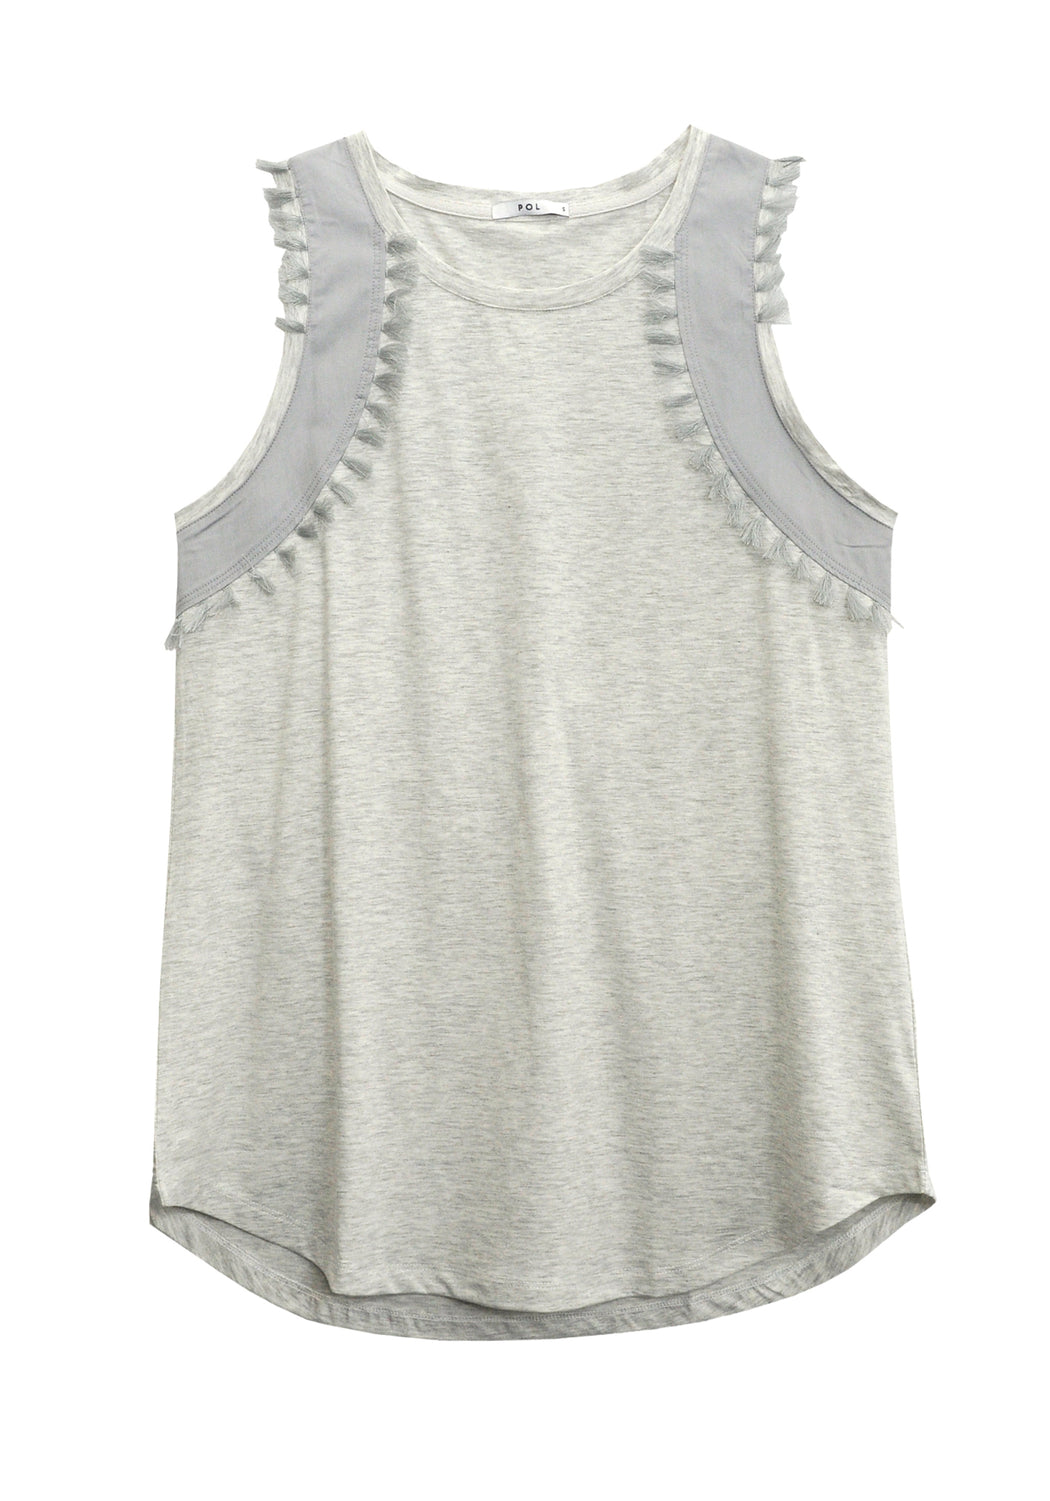 Scope Tassel Tank